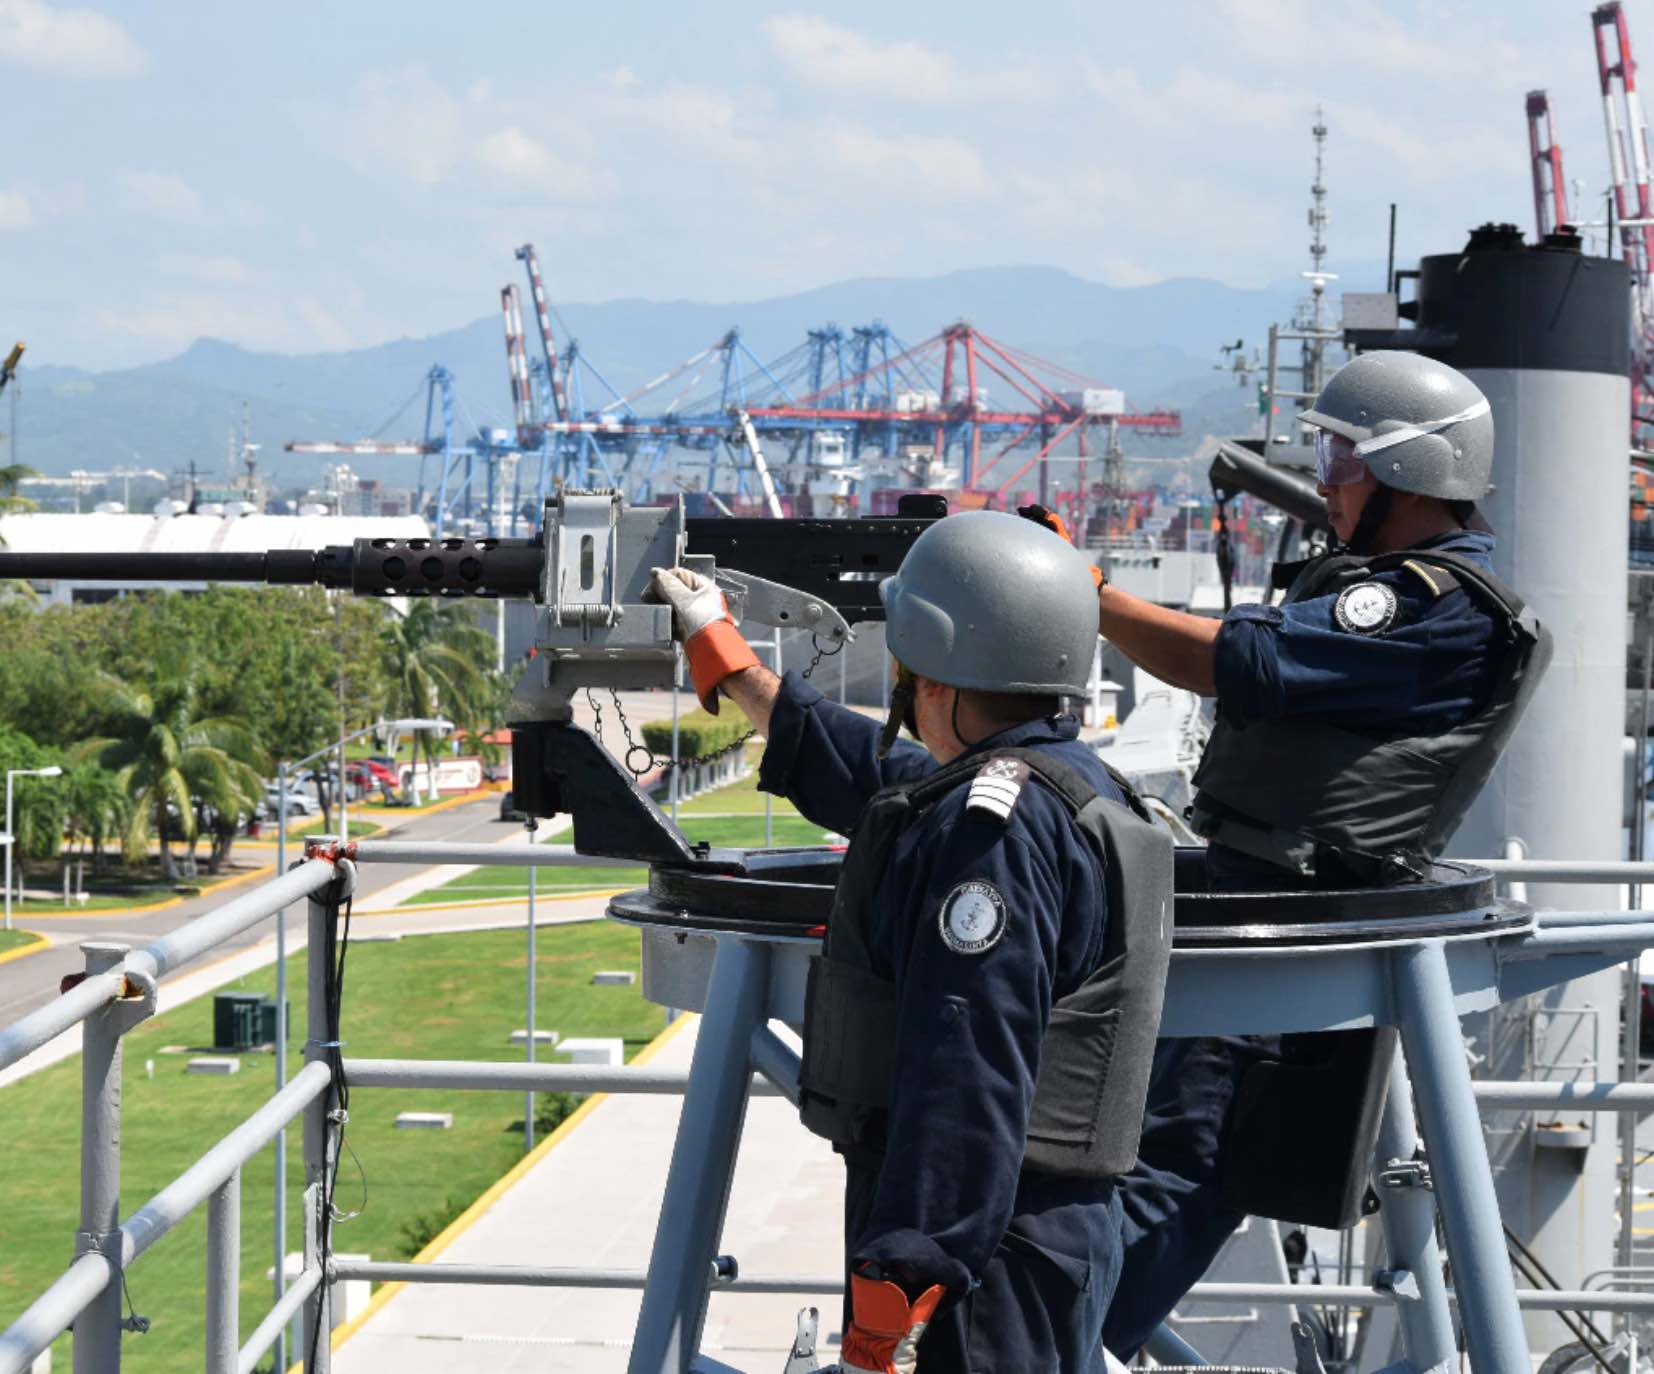 What's at stake in putting the navy in charge of Mexico's ports?